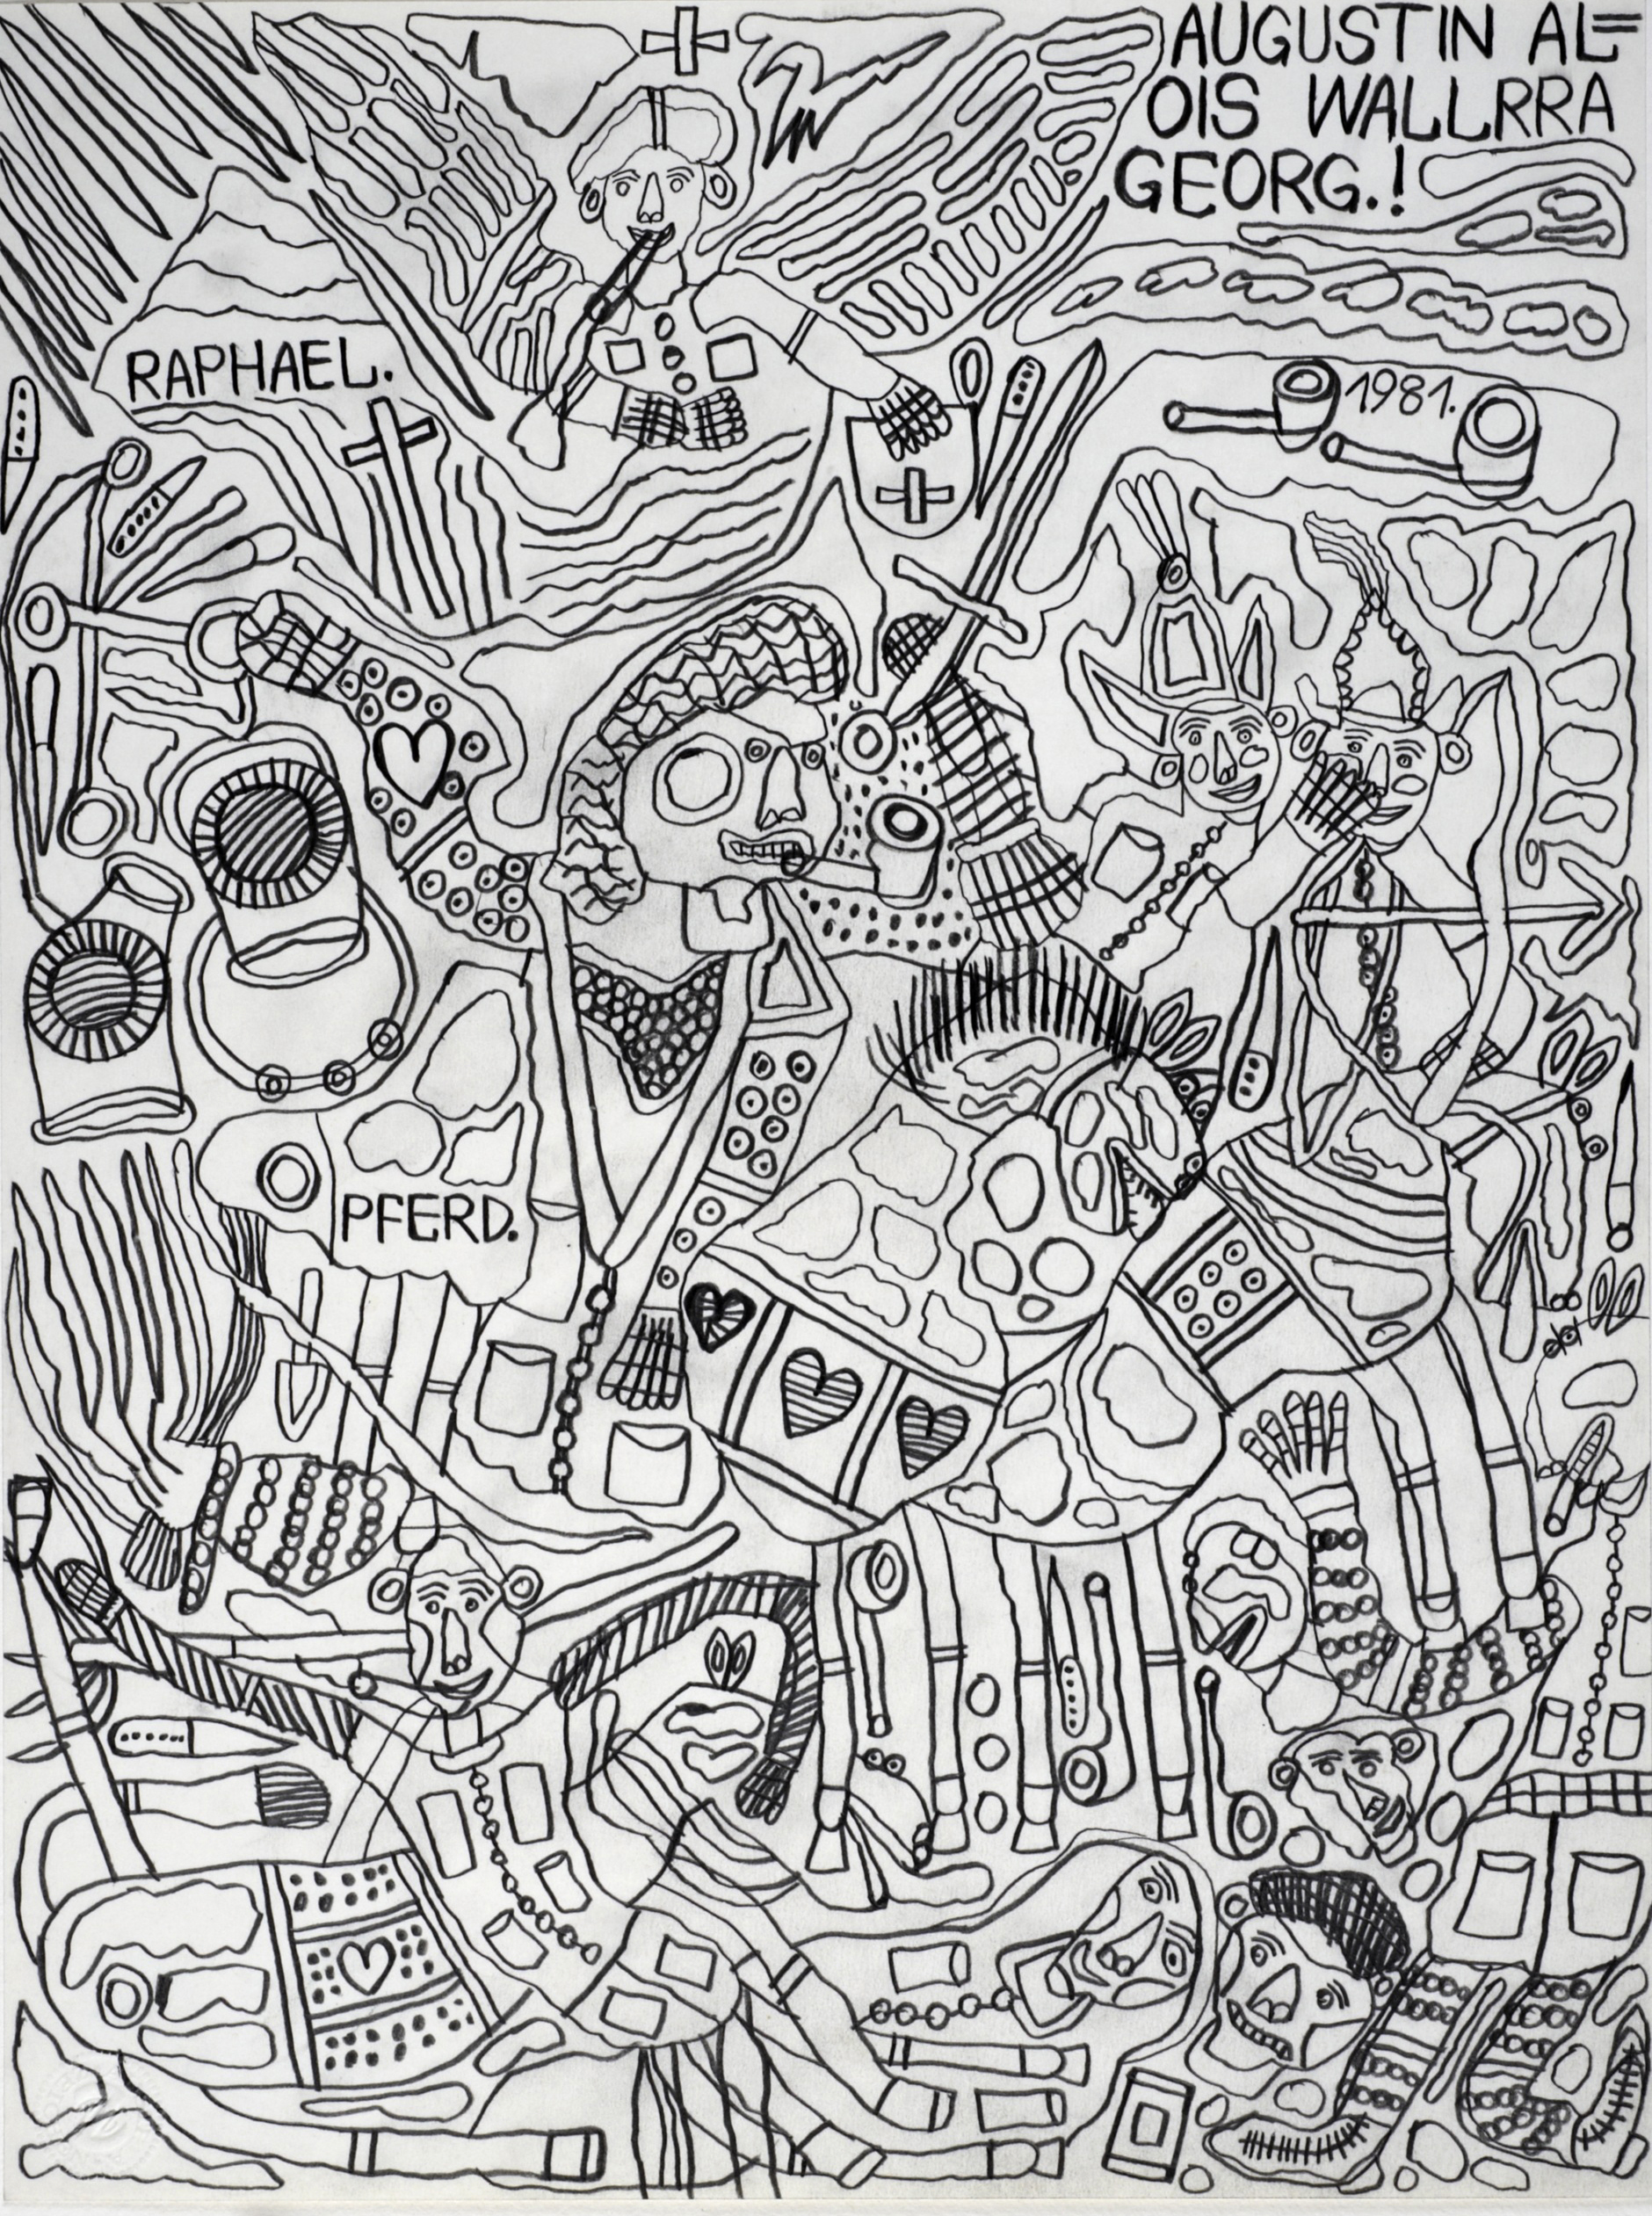 August Walla, RAPHAEL., 1981 © Art Brut KG